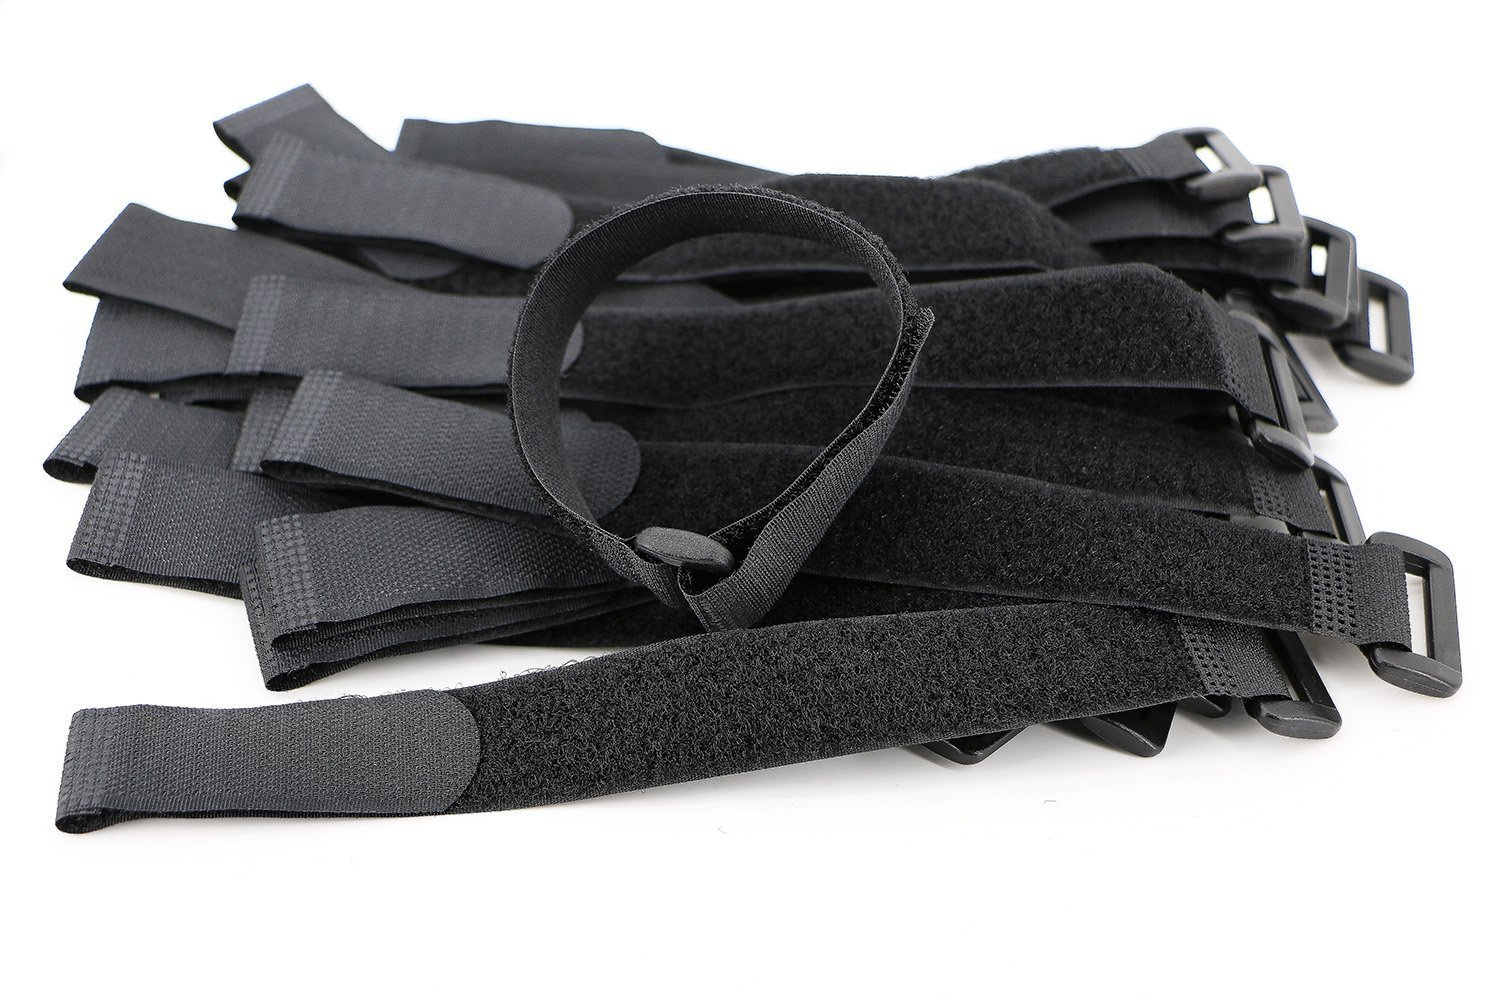 Elantek 50-PCS Hook and Loop Reusable Fastening Cable Tie Down Straps- 0.8'' x 8''-Black by Elantek (Image #1)